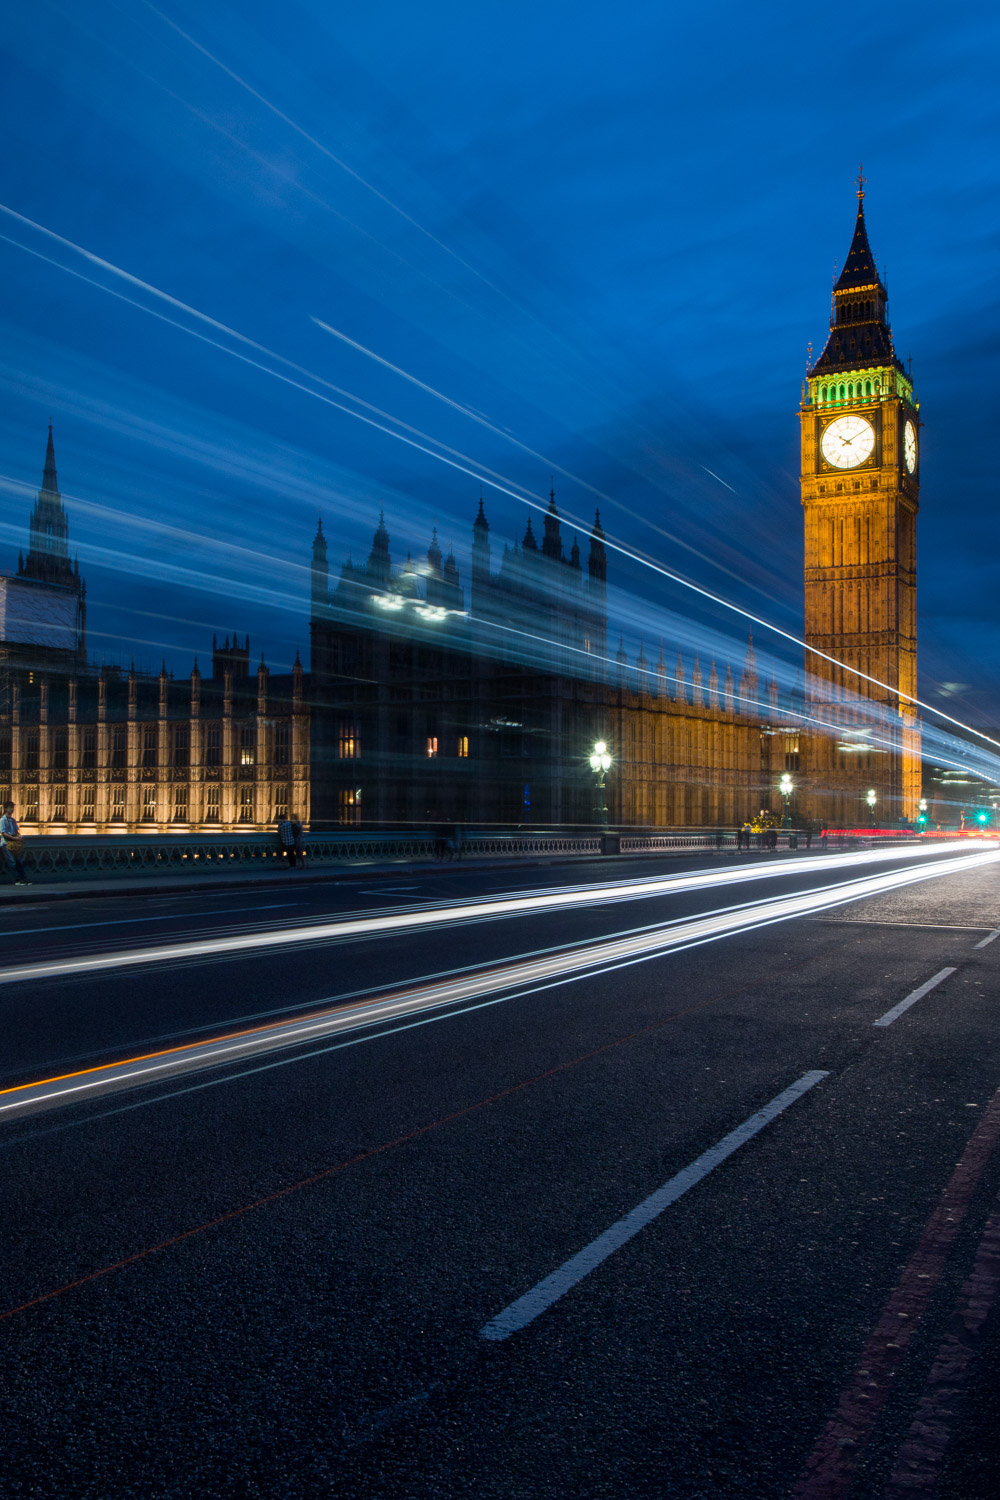 White Light Trails at Westminster